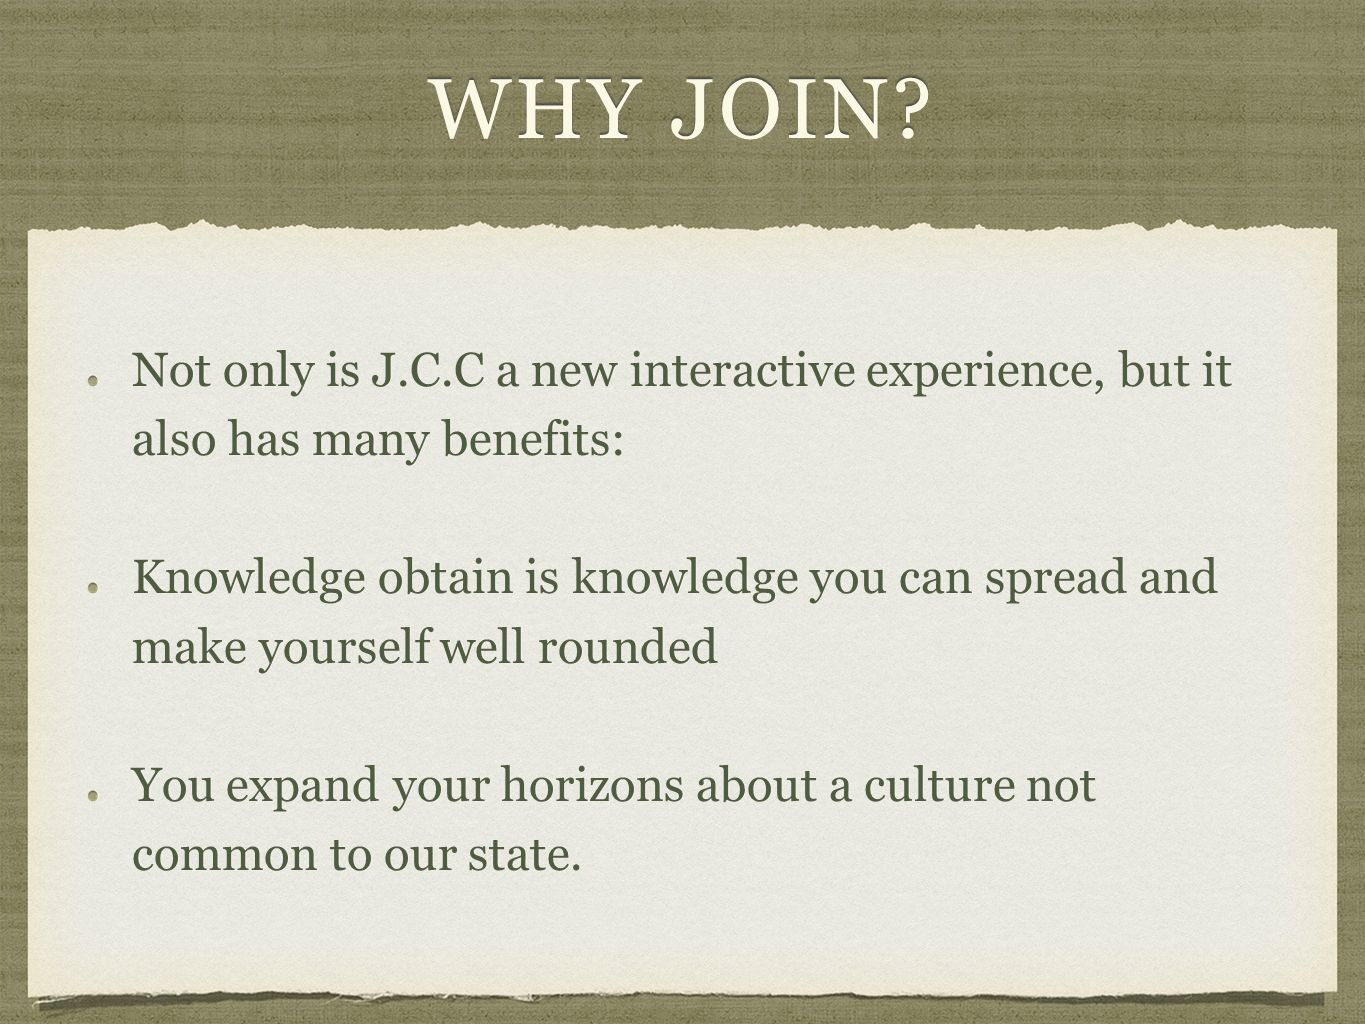 WHY JOIN.